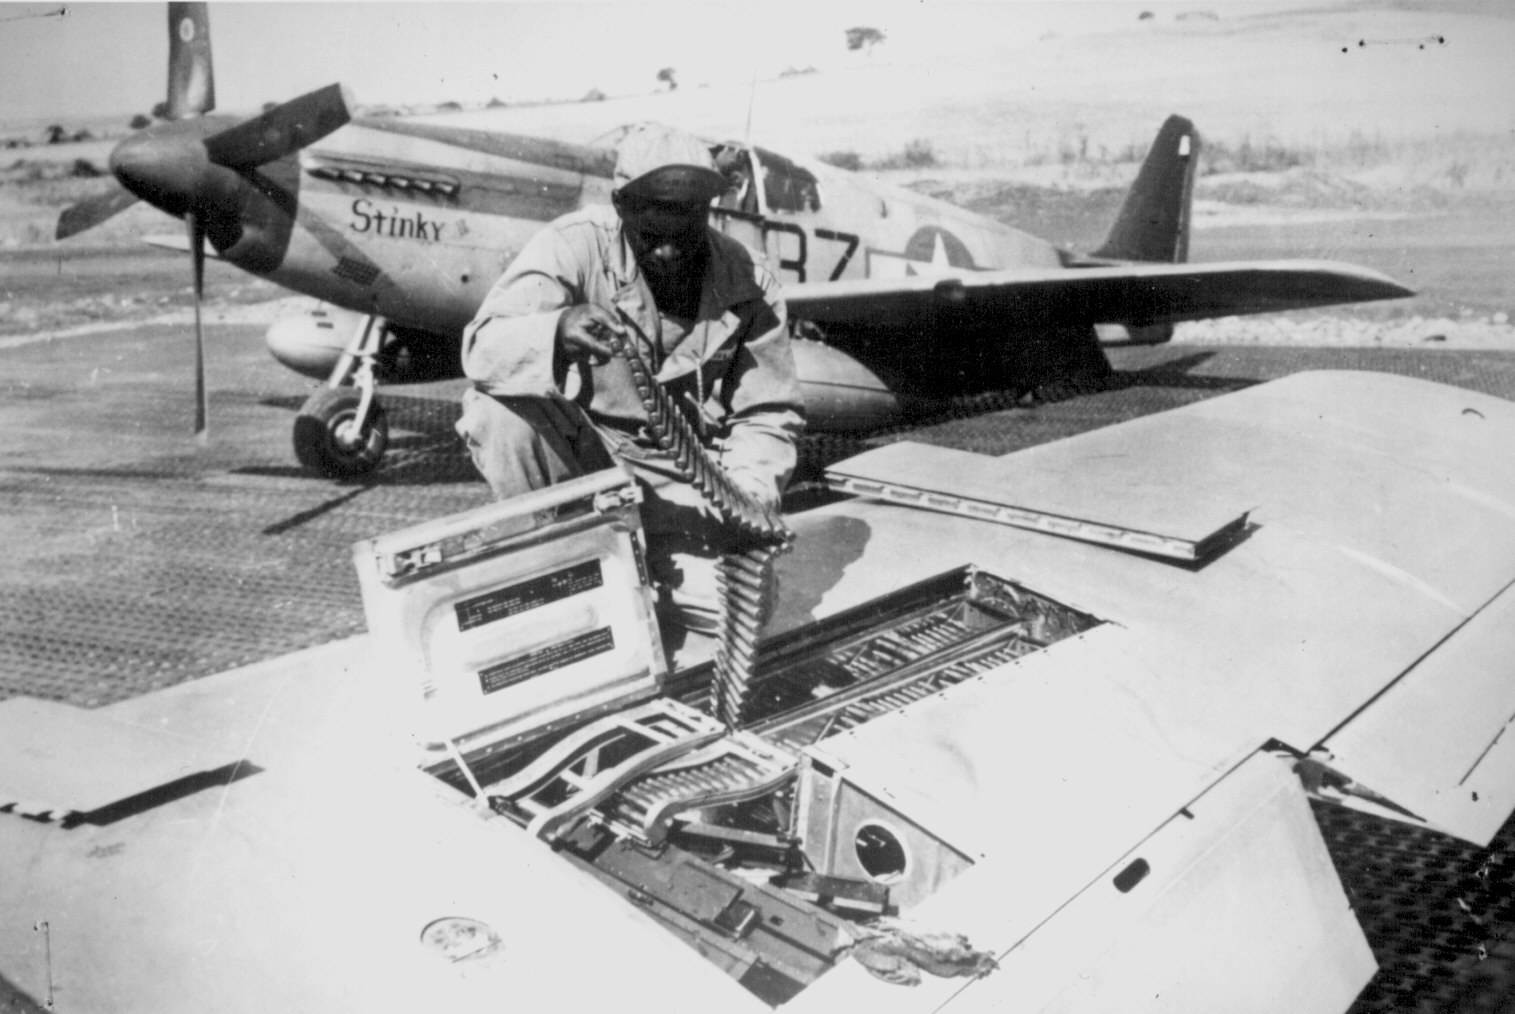 http://www.archives.gov/research/african-americans/ww2-pictures/images/african-americans-wwii-055.jpg